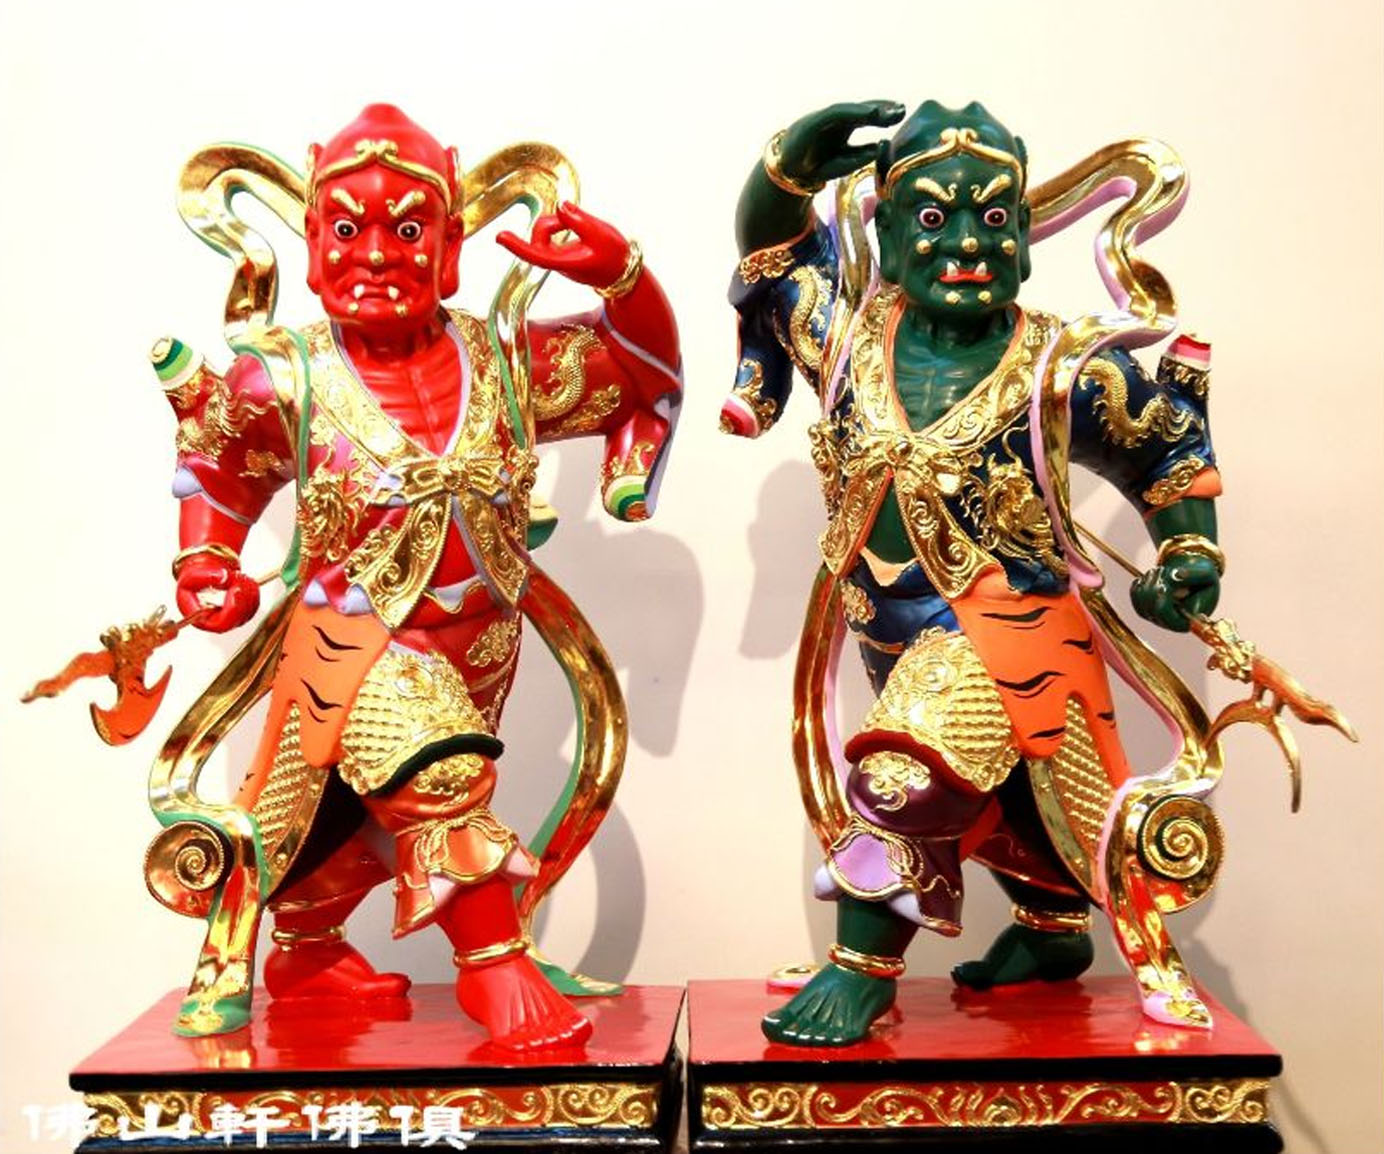 Qianliyan and Shunfenger religious statues